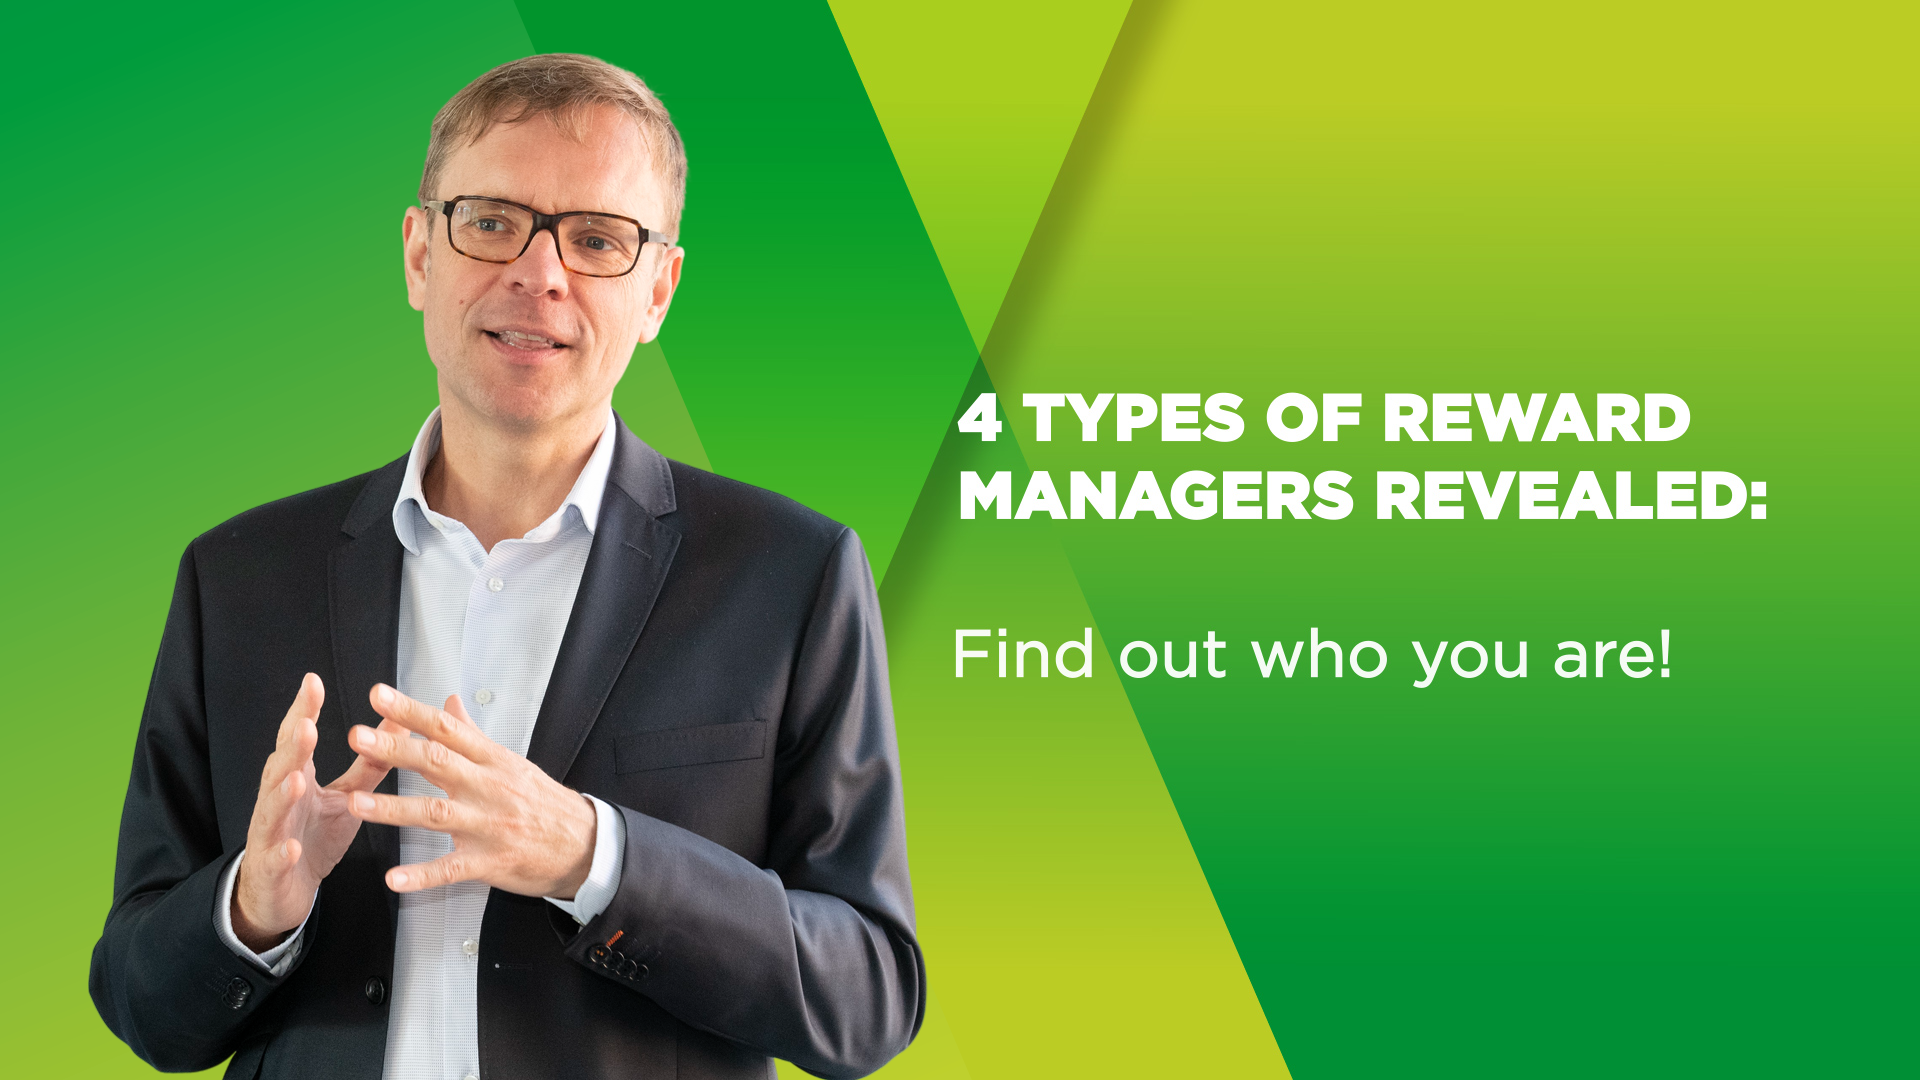 video - 4 types of reward managers